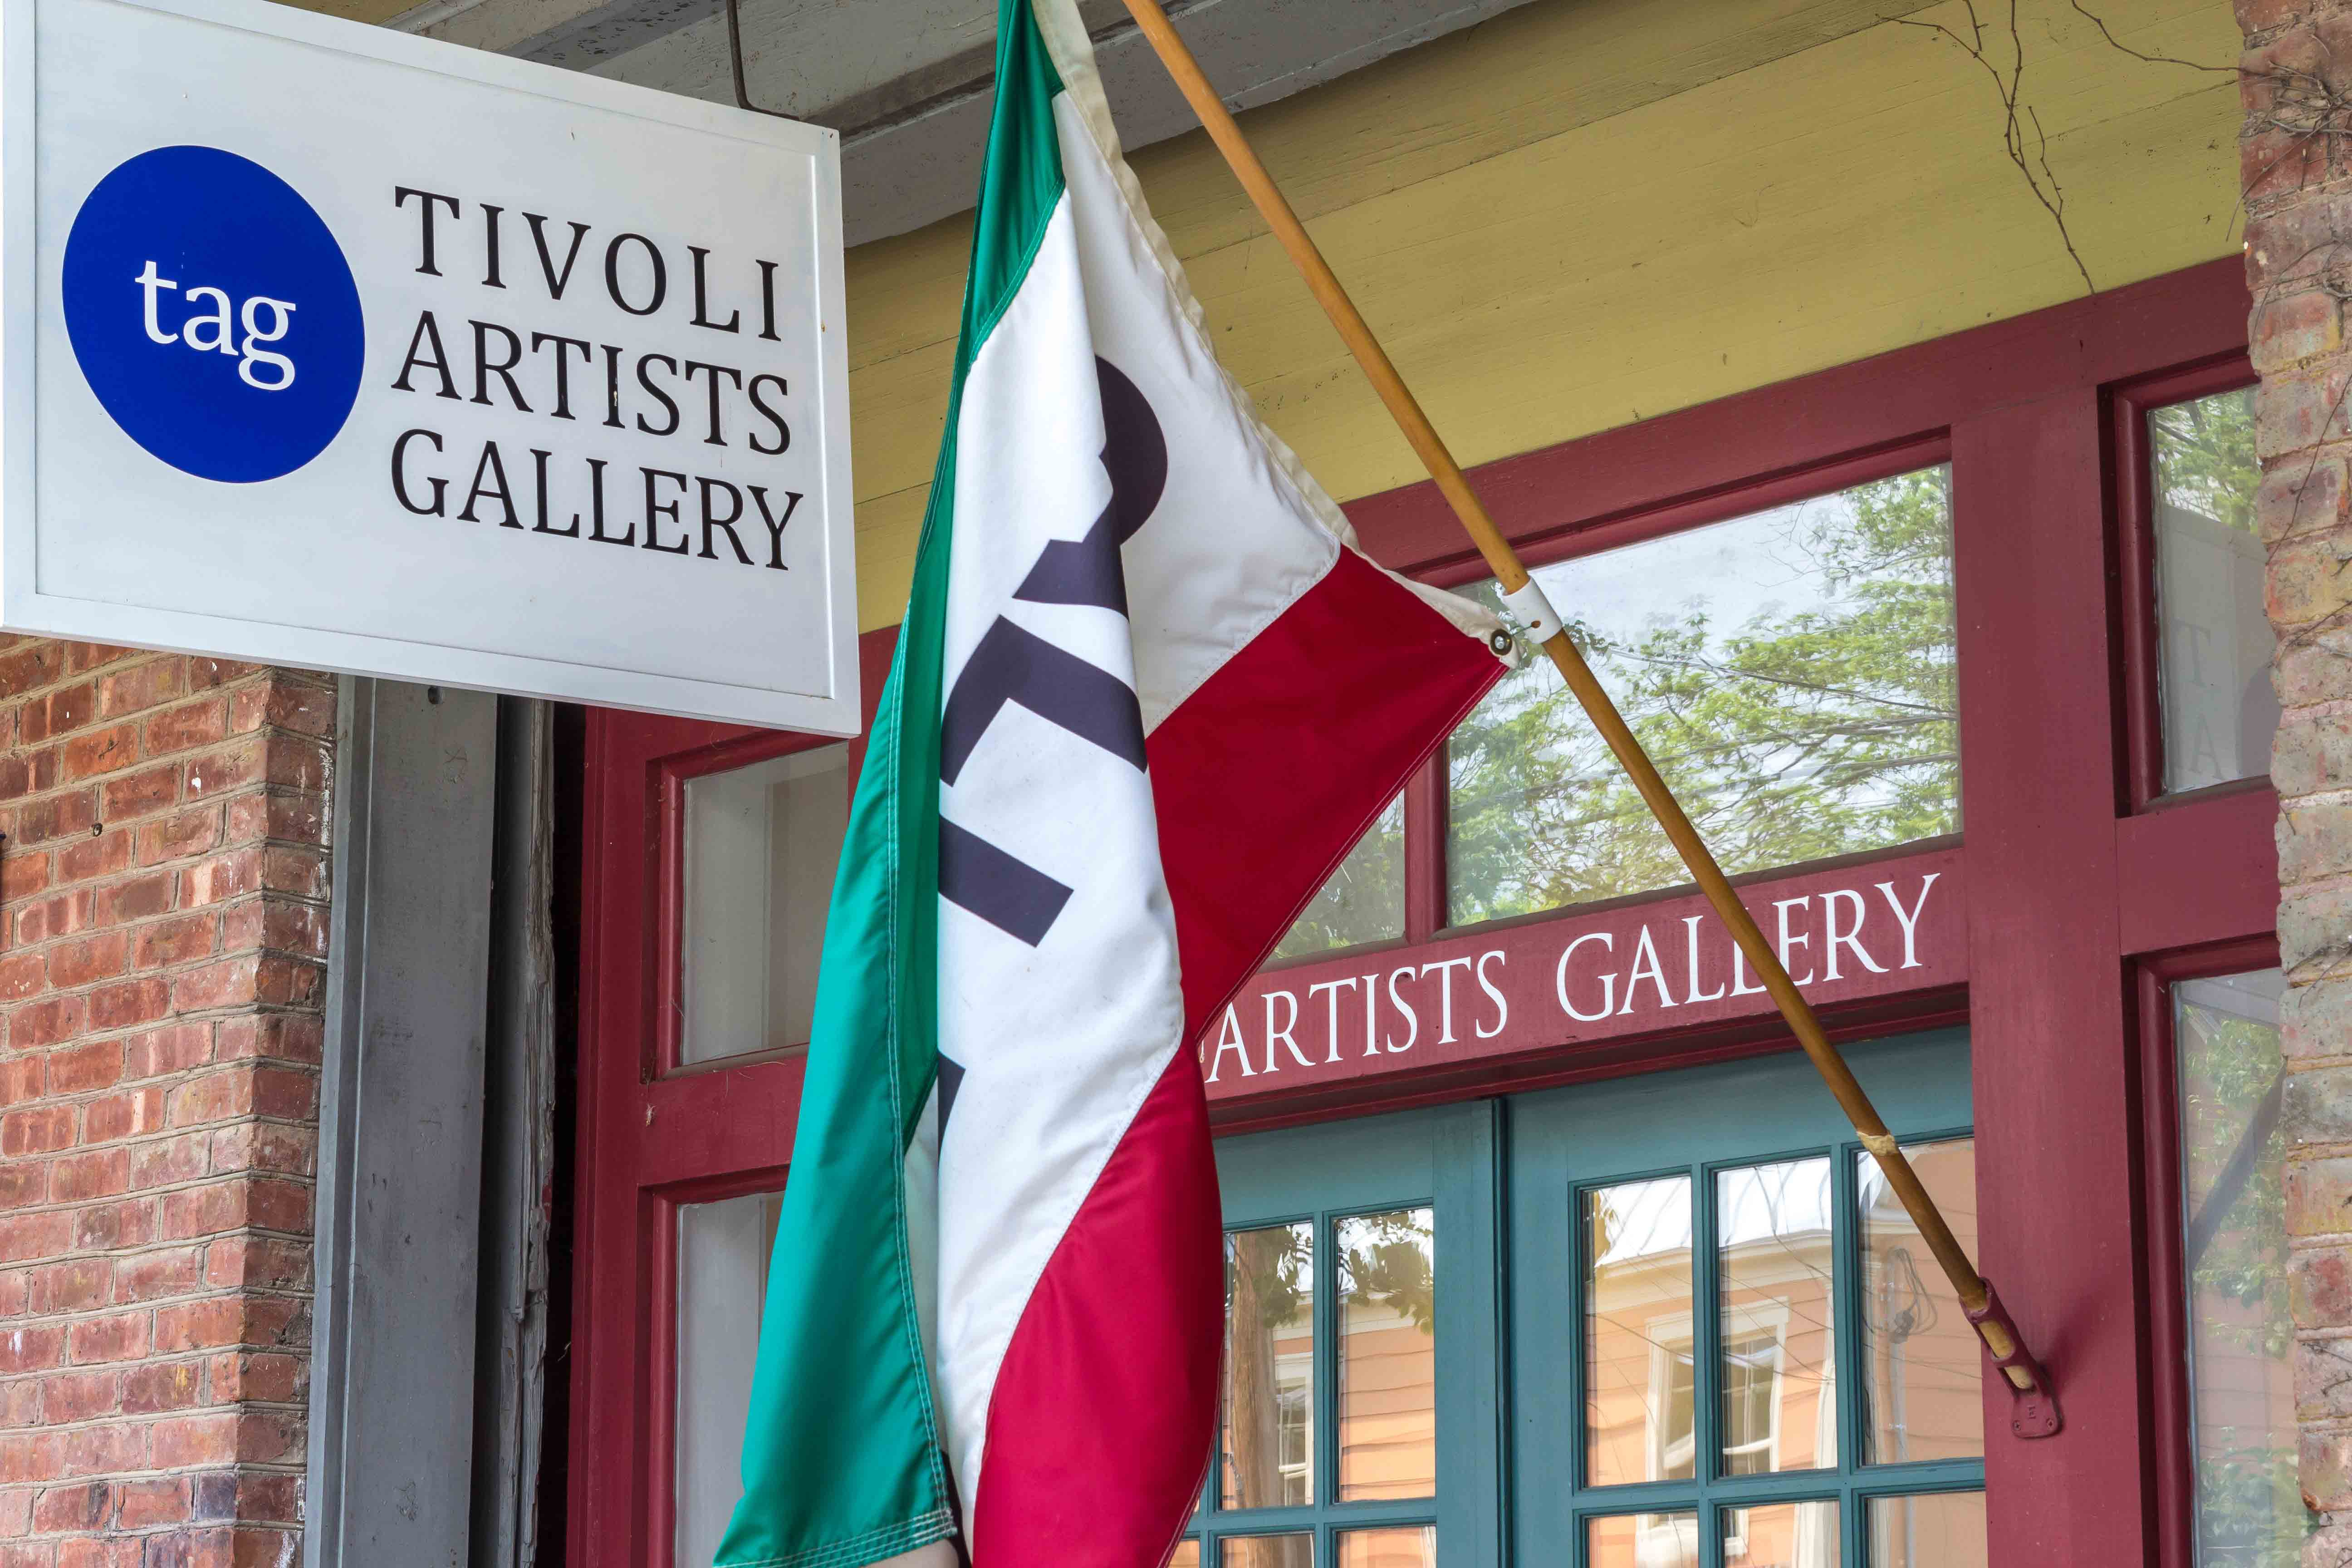 TIVOLI_ARTISTS_GALLERY_SIGN-9868_loRes